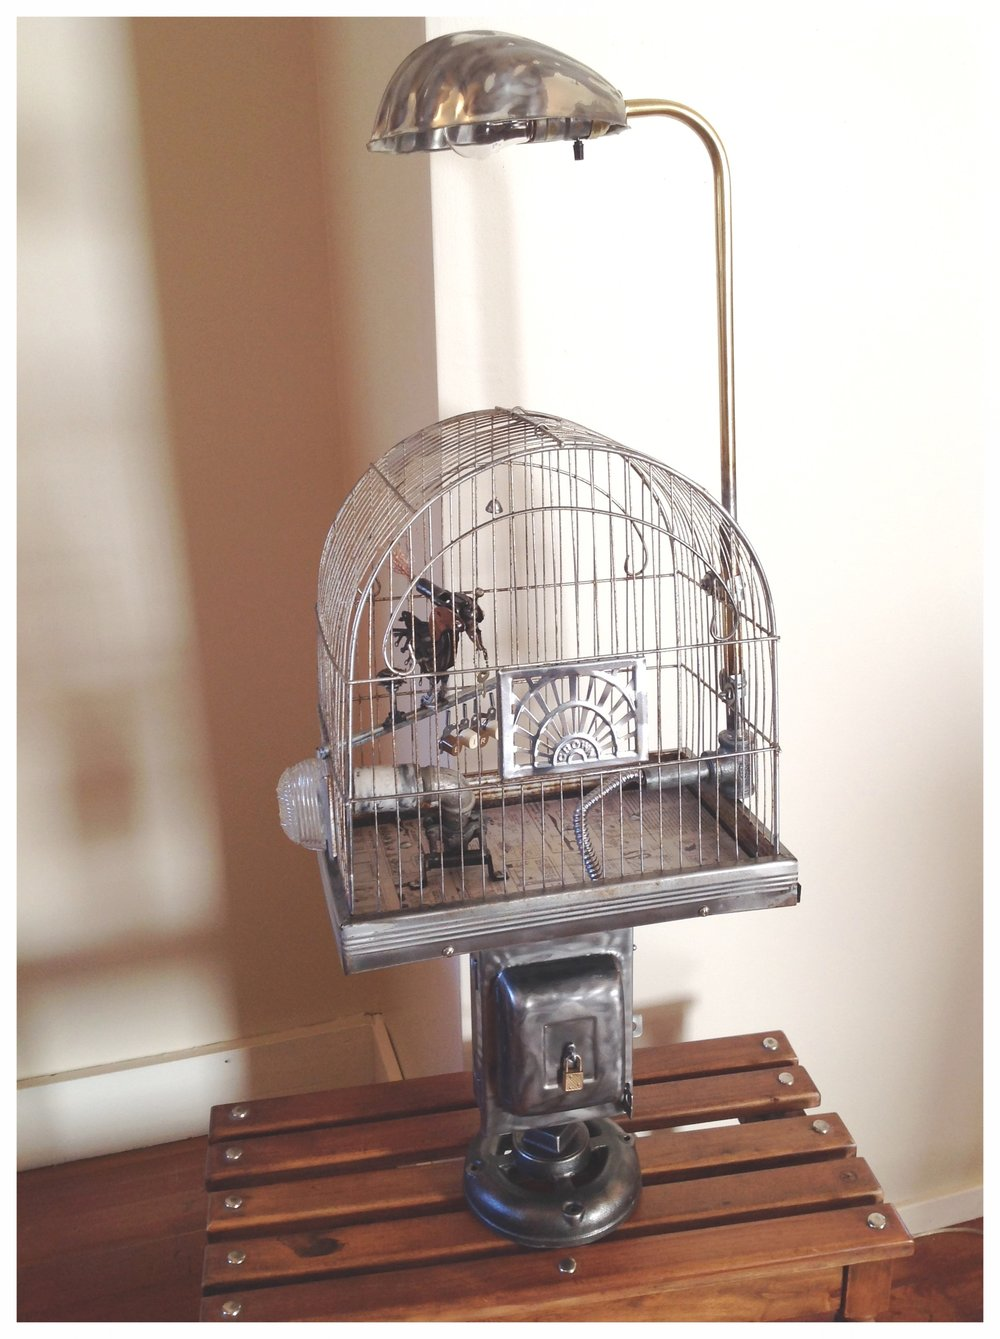 amazing stand birdcage mod floor mess so turn lamp beautiful into a an easy